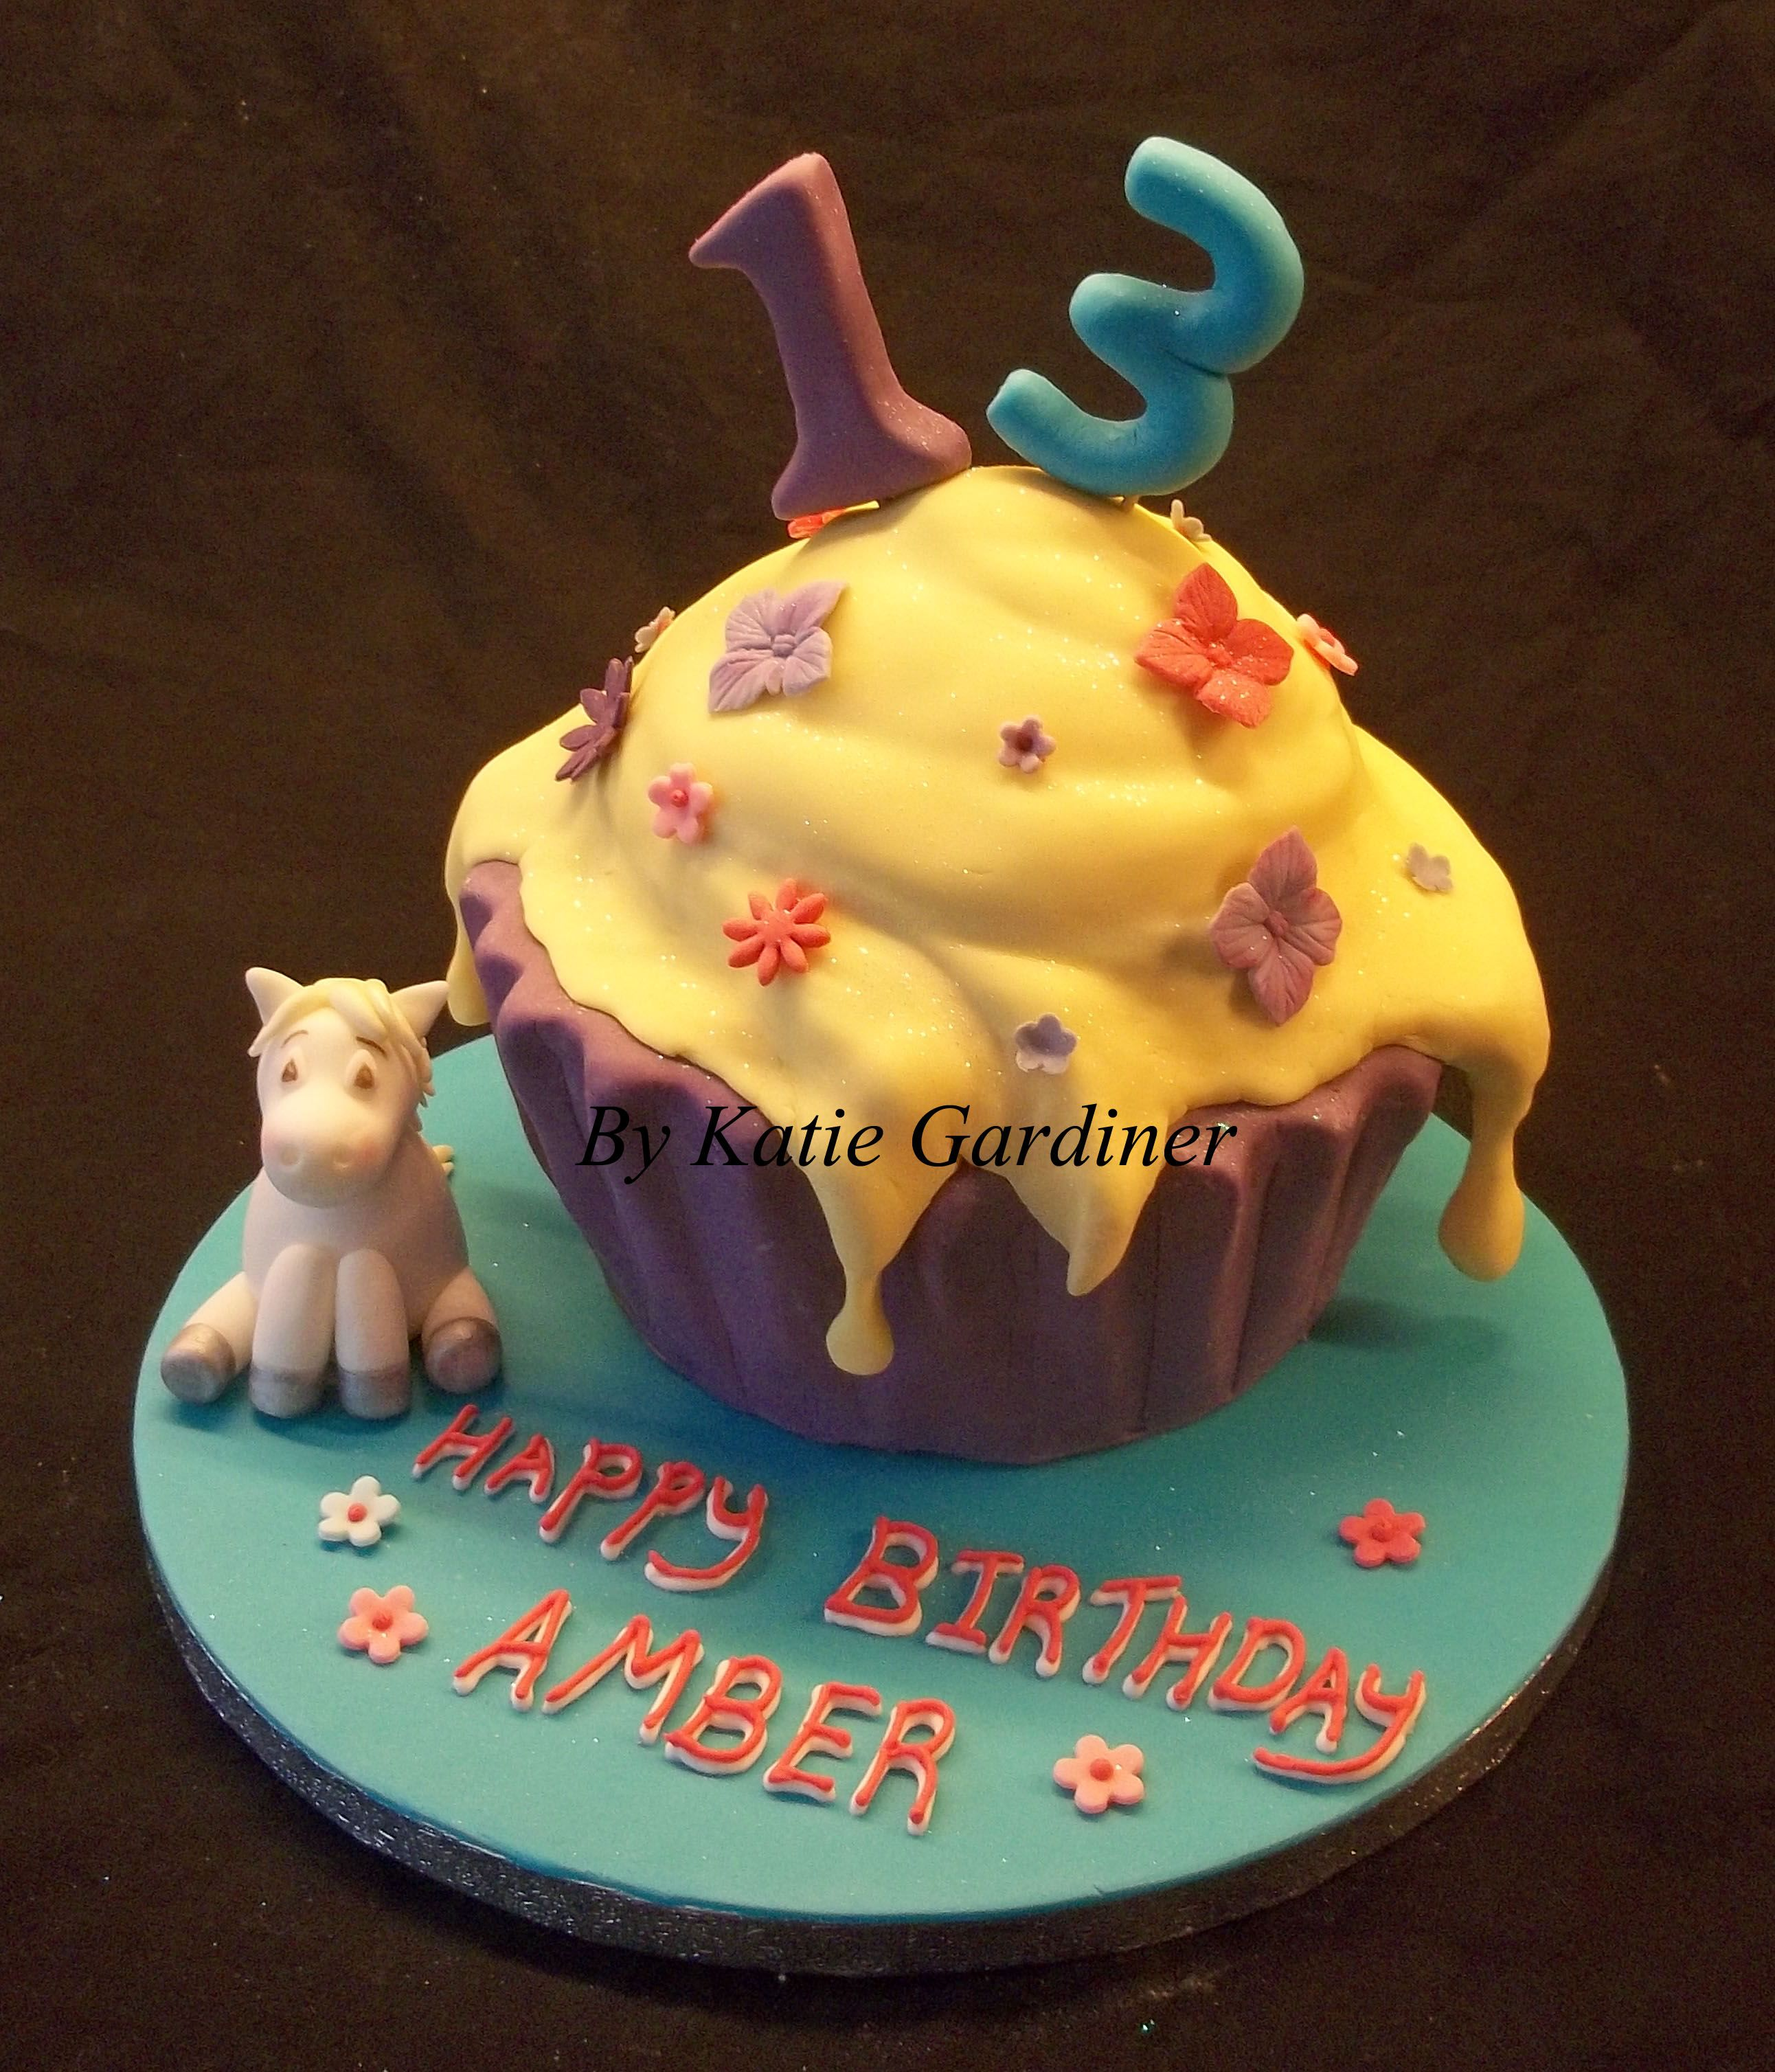 Sensational Colourful Pony Giant Cupcake With Images Celebration Cakes Personalised Birthday Cards Sponlily Jamesorg